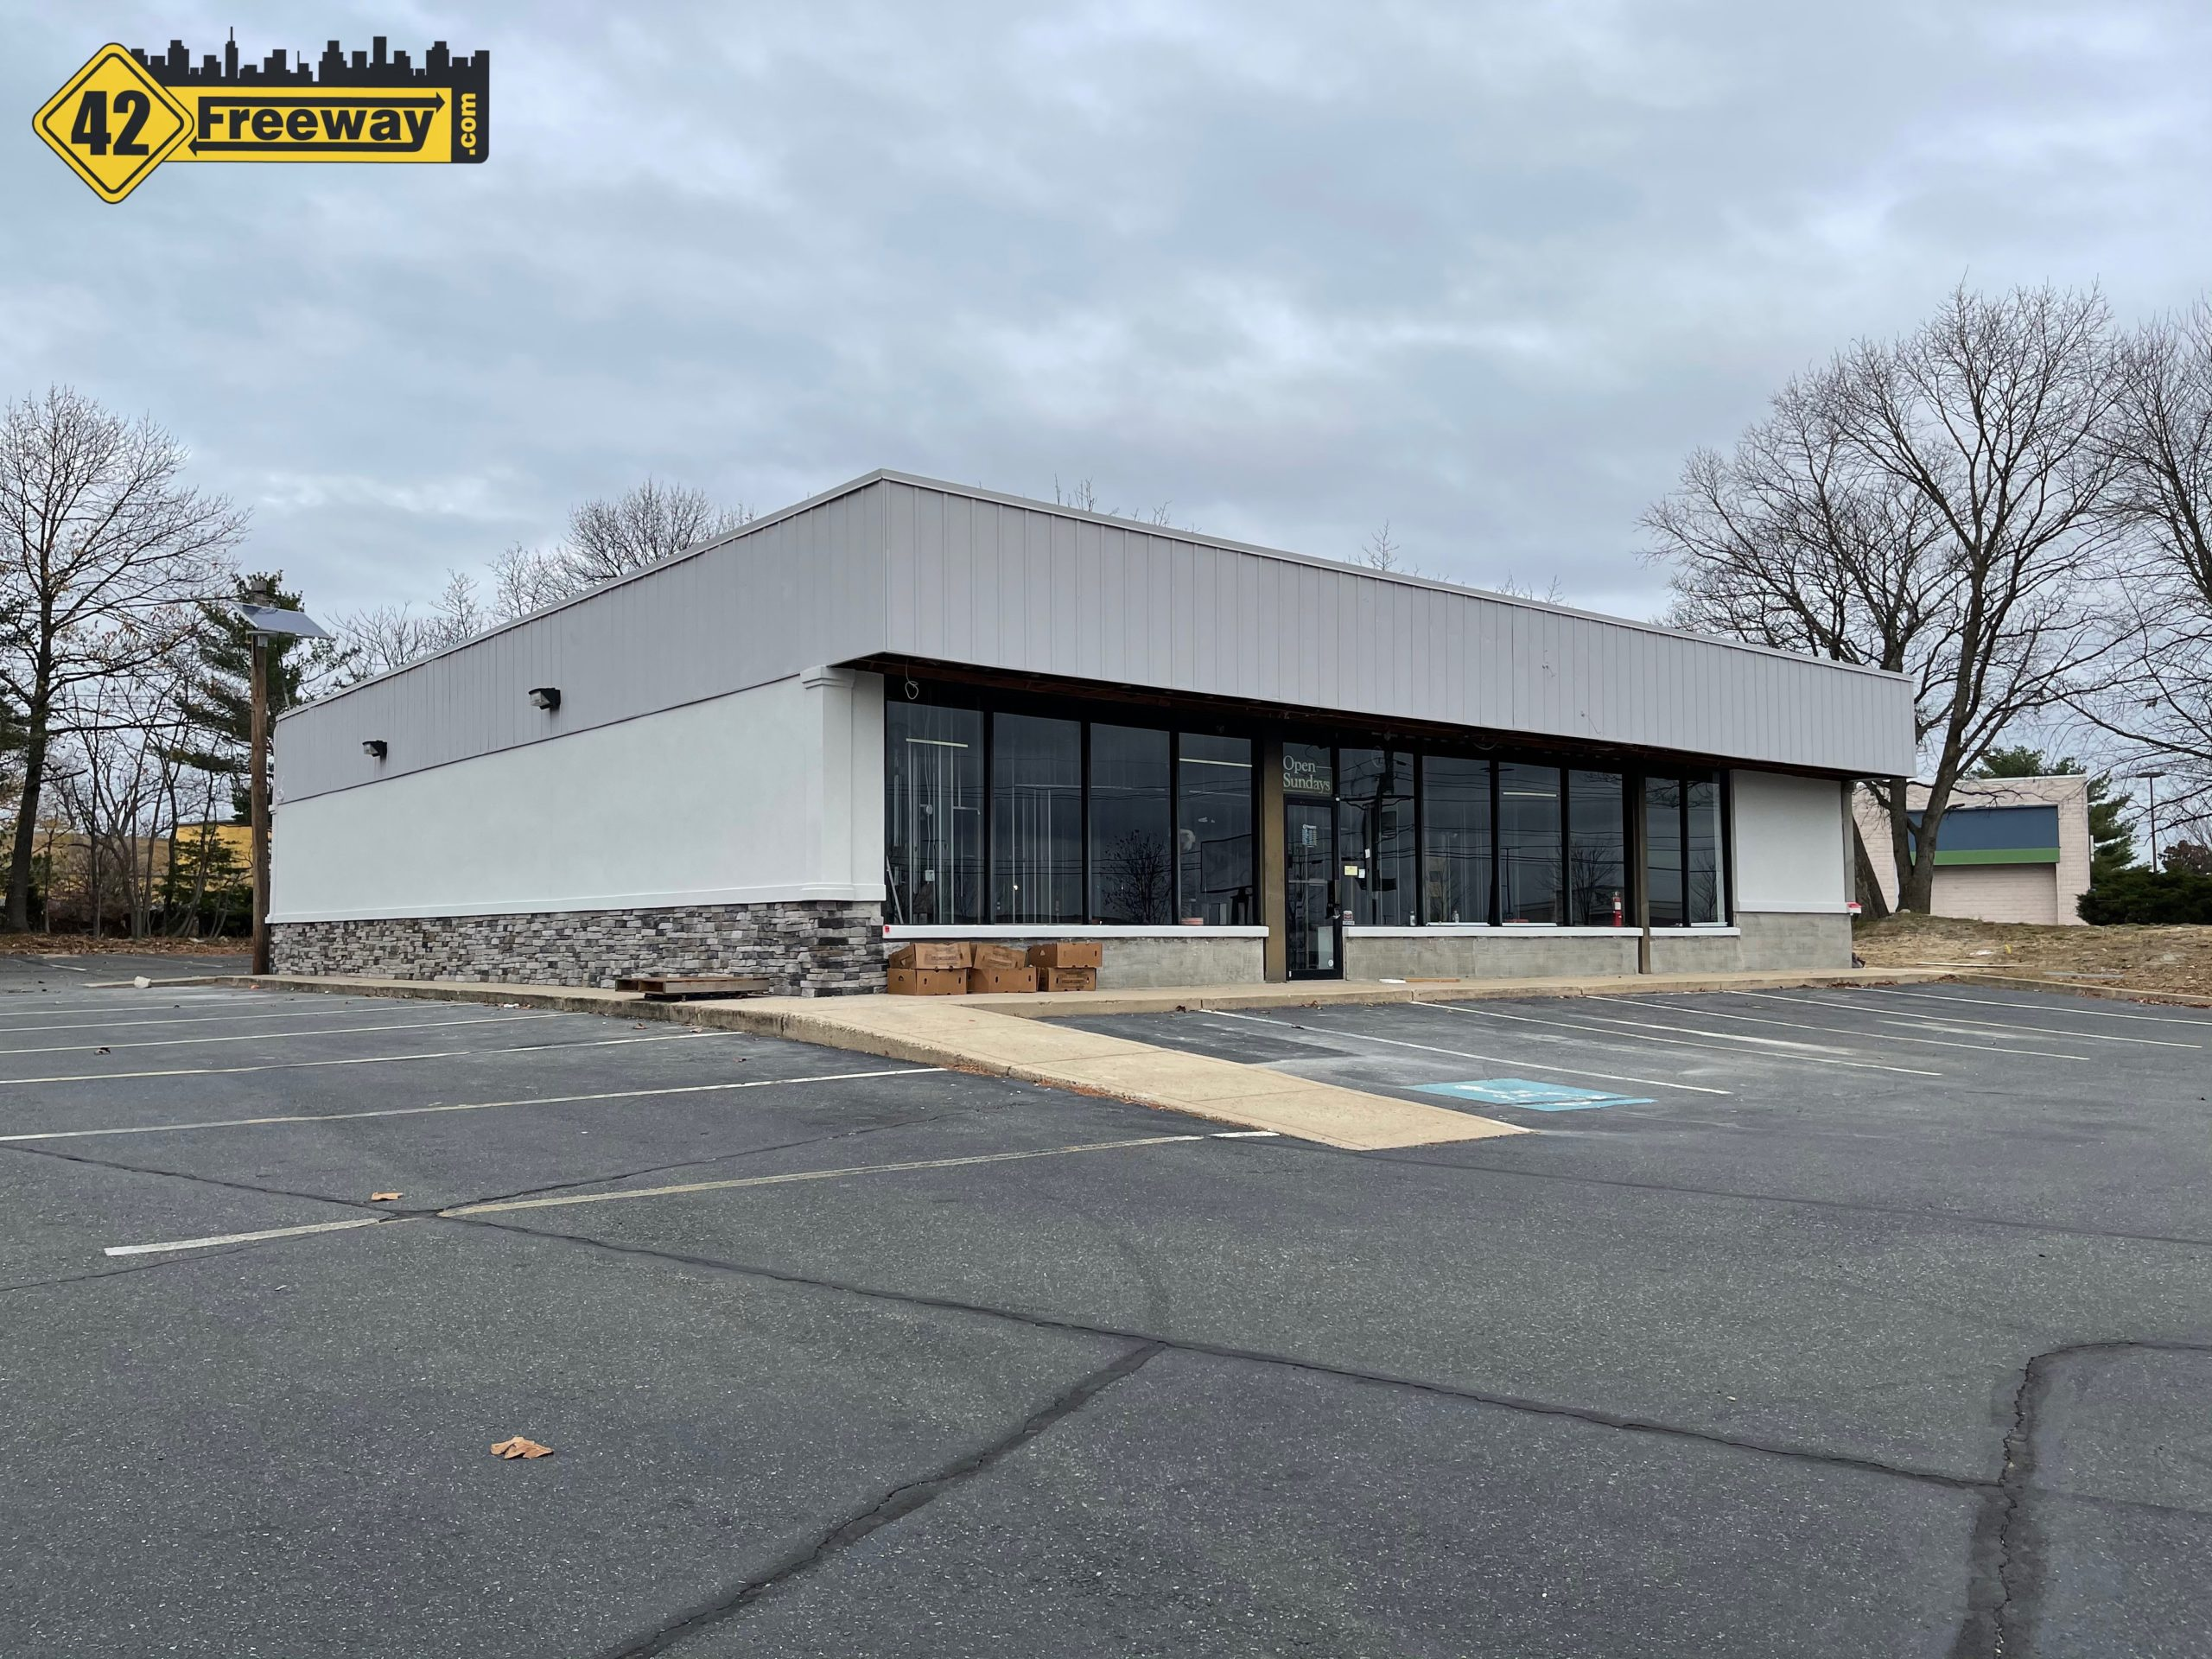 Pet Check Urgent Care Opening Deptford NJ Location.  This Second Location will Take Over Former Payless Building